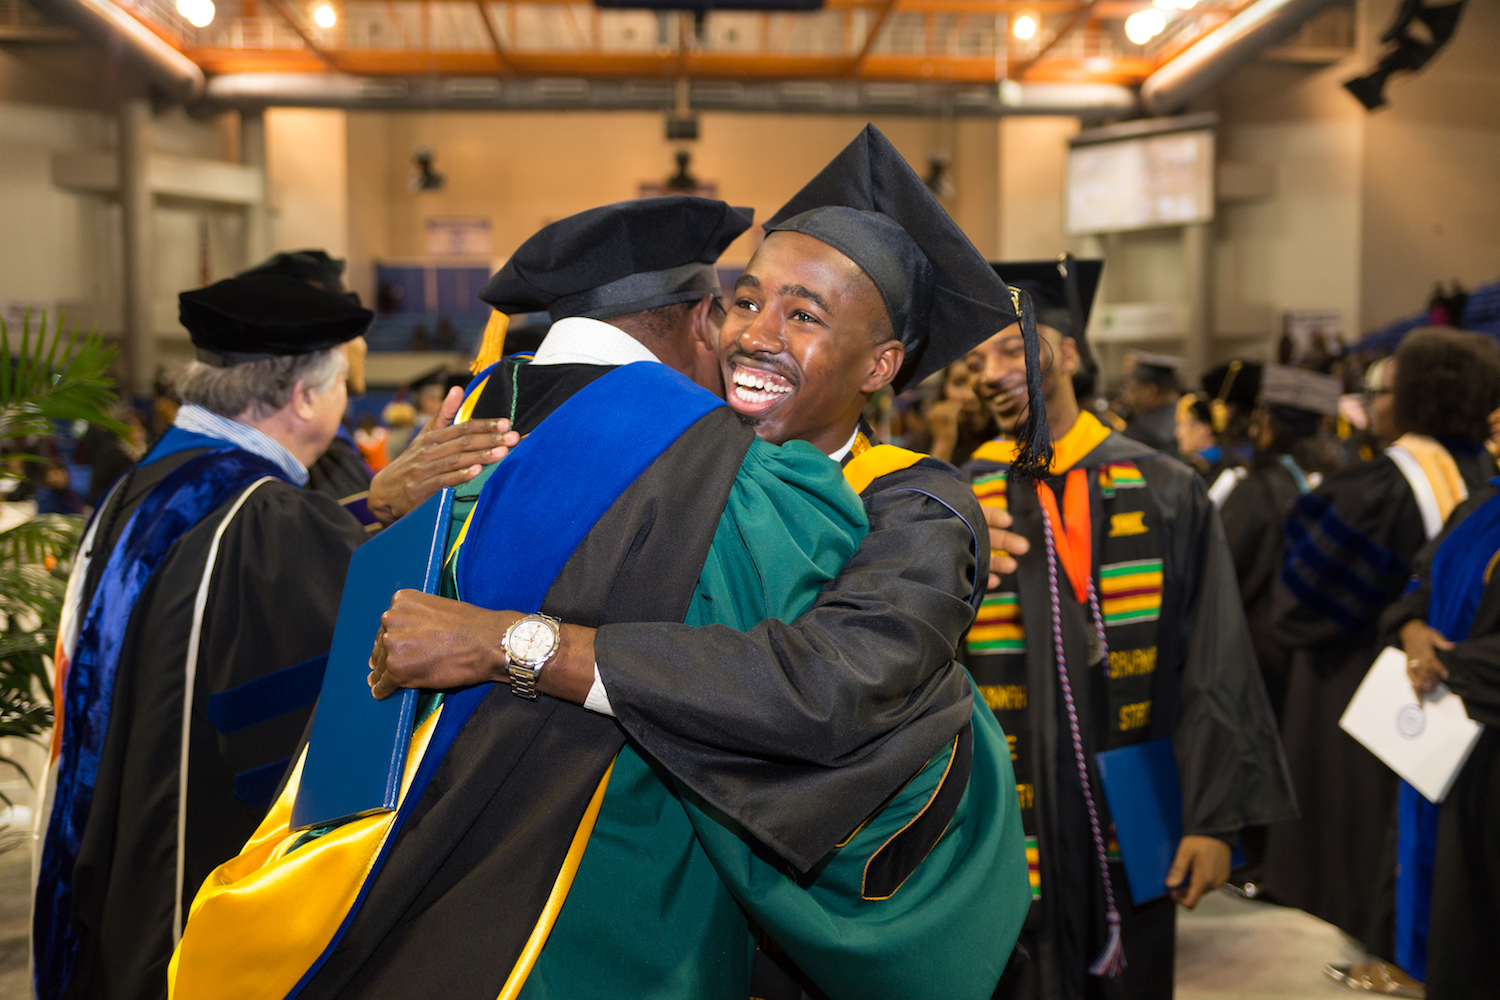 Graduating student hugs his professor